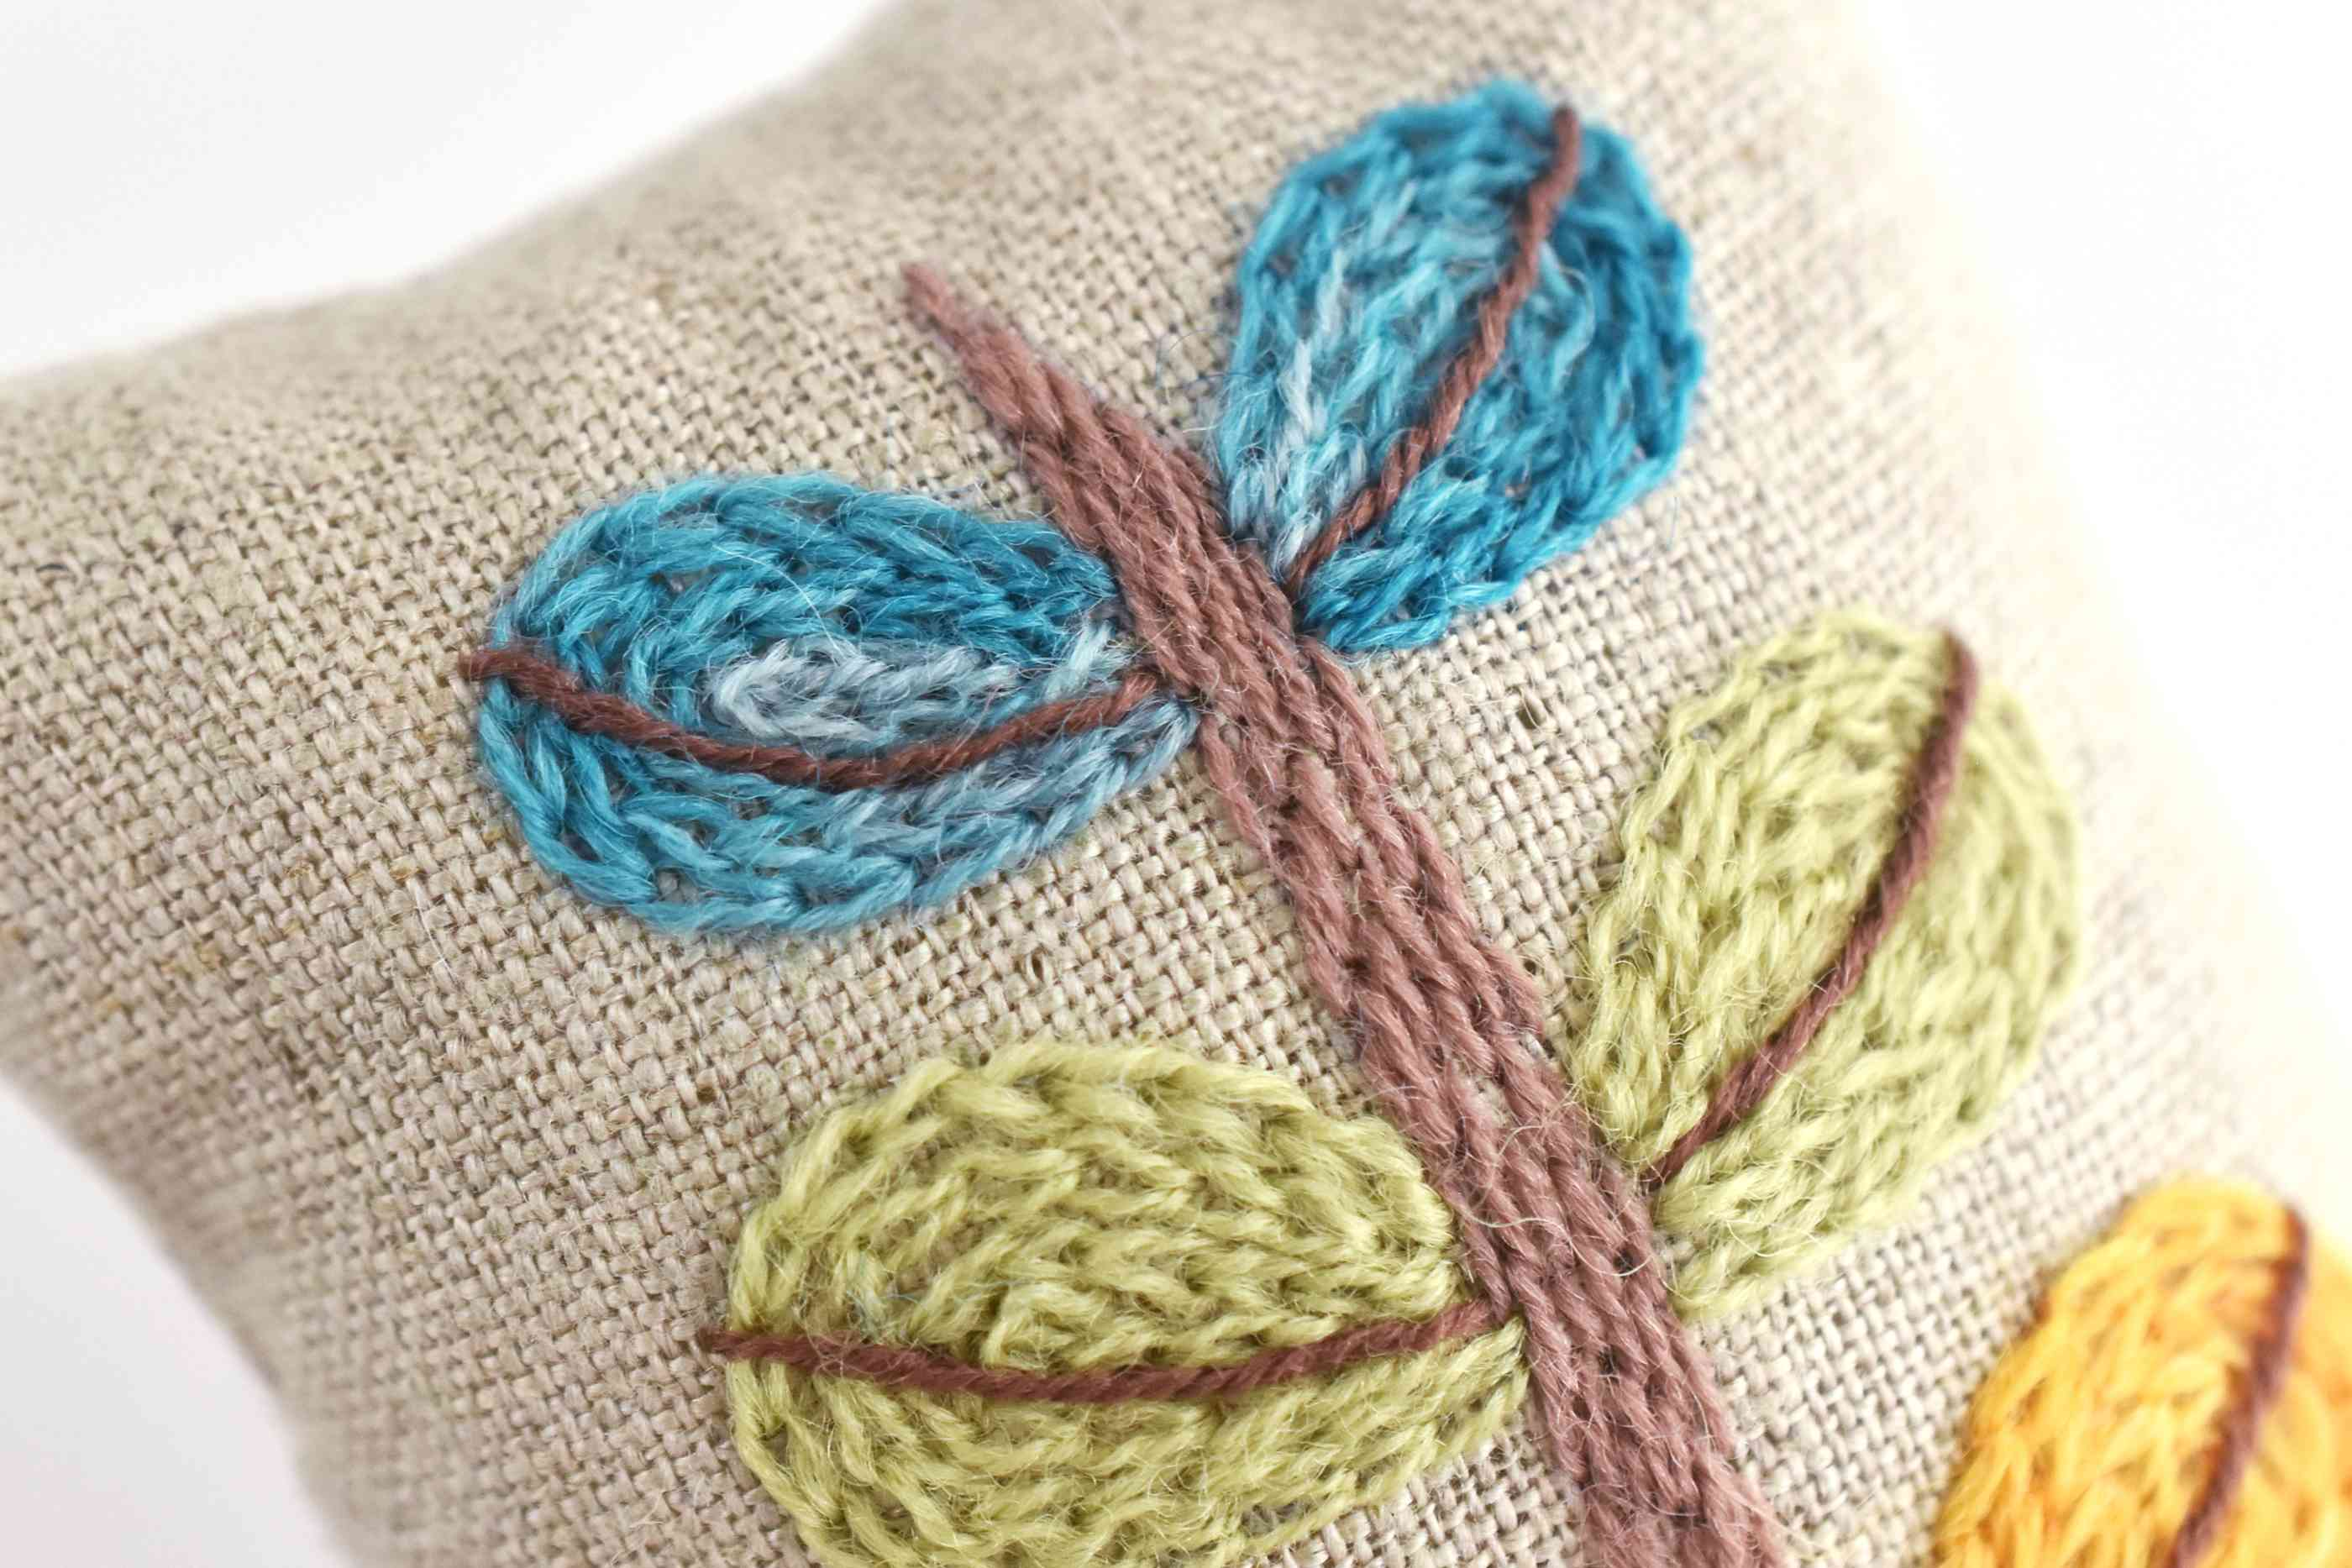 Close-Up of Crewel Embroidery Stitches